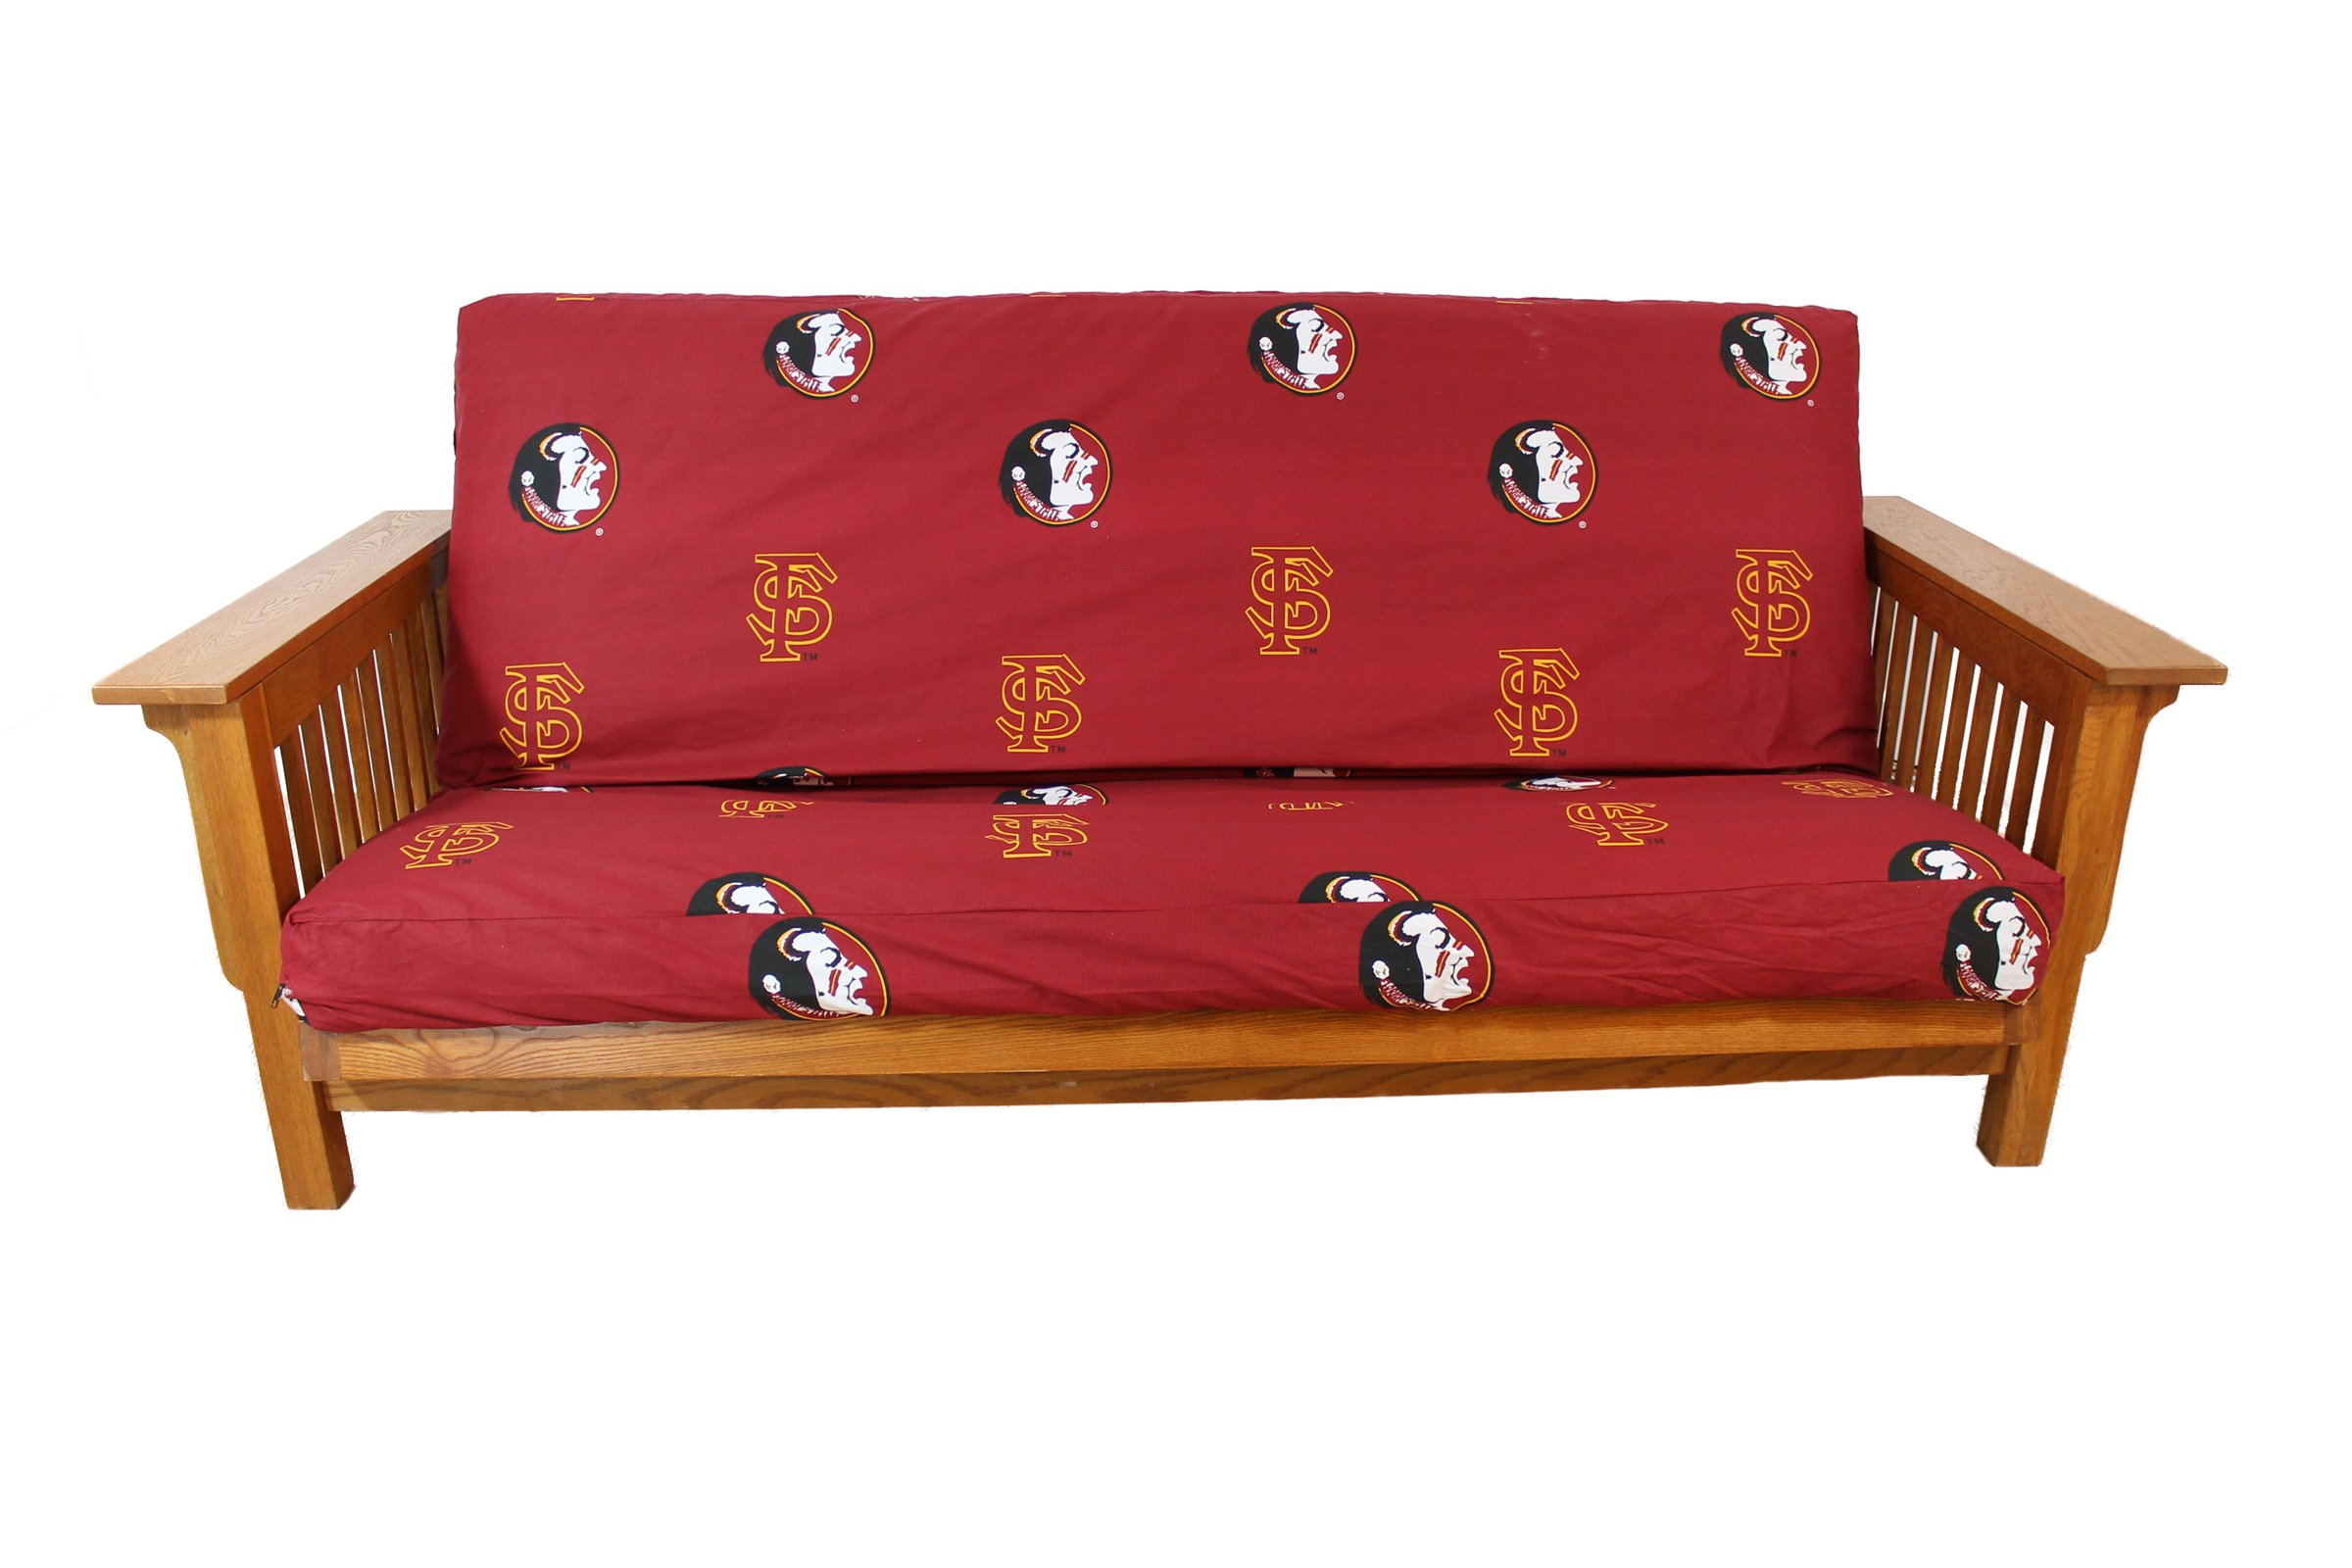 College Covers Florida State Seminoles Futon Cover - Full size fits 6 and 8 inch mats